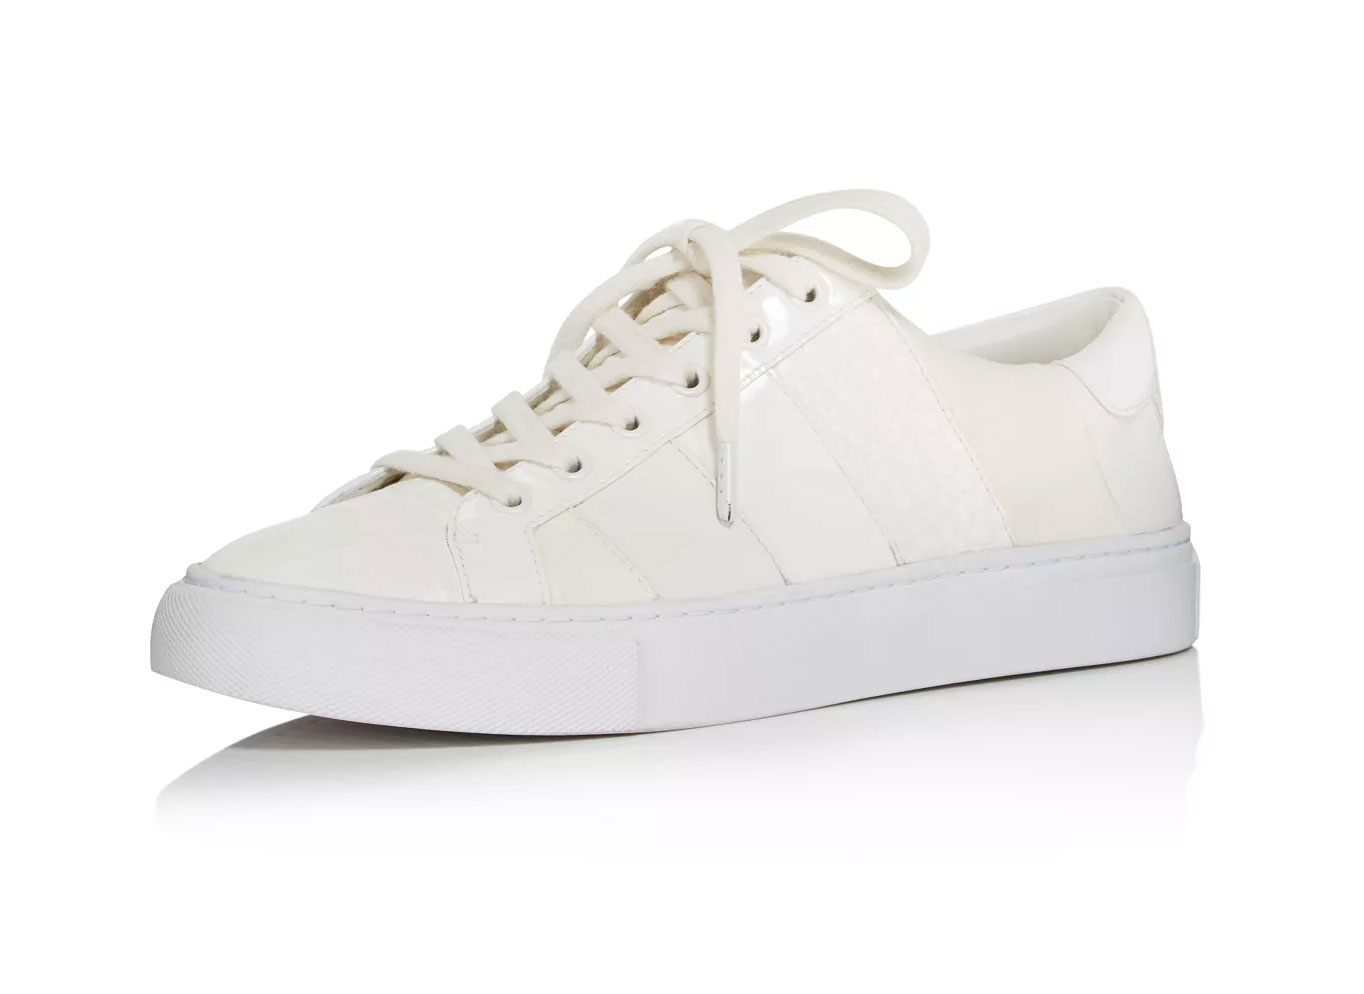 Tory Burch Women's Ames Leather & Suede Sneakers